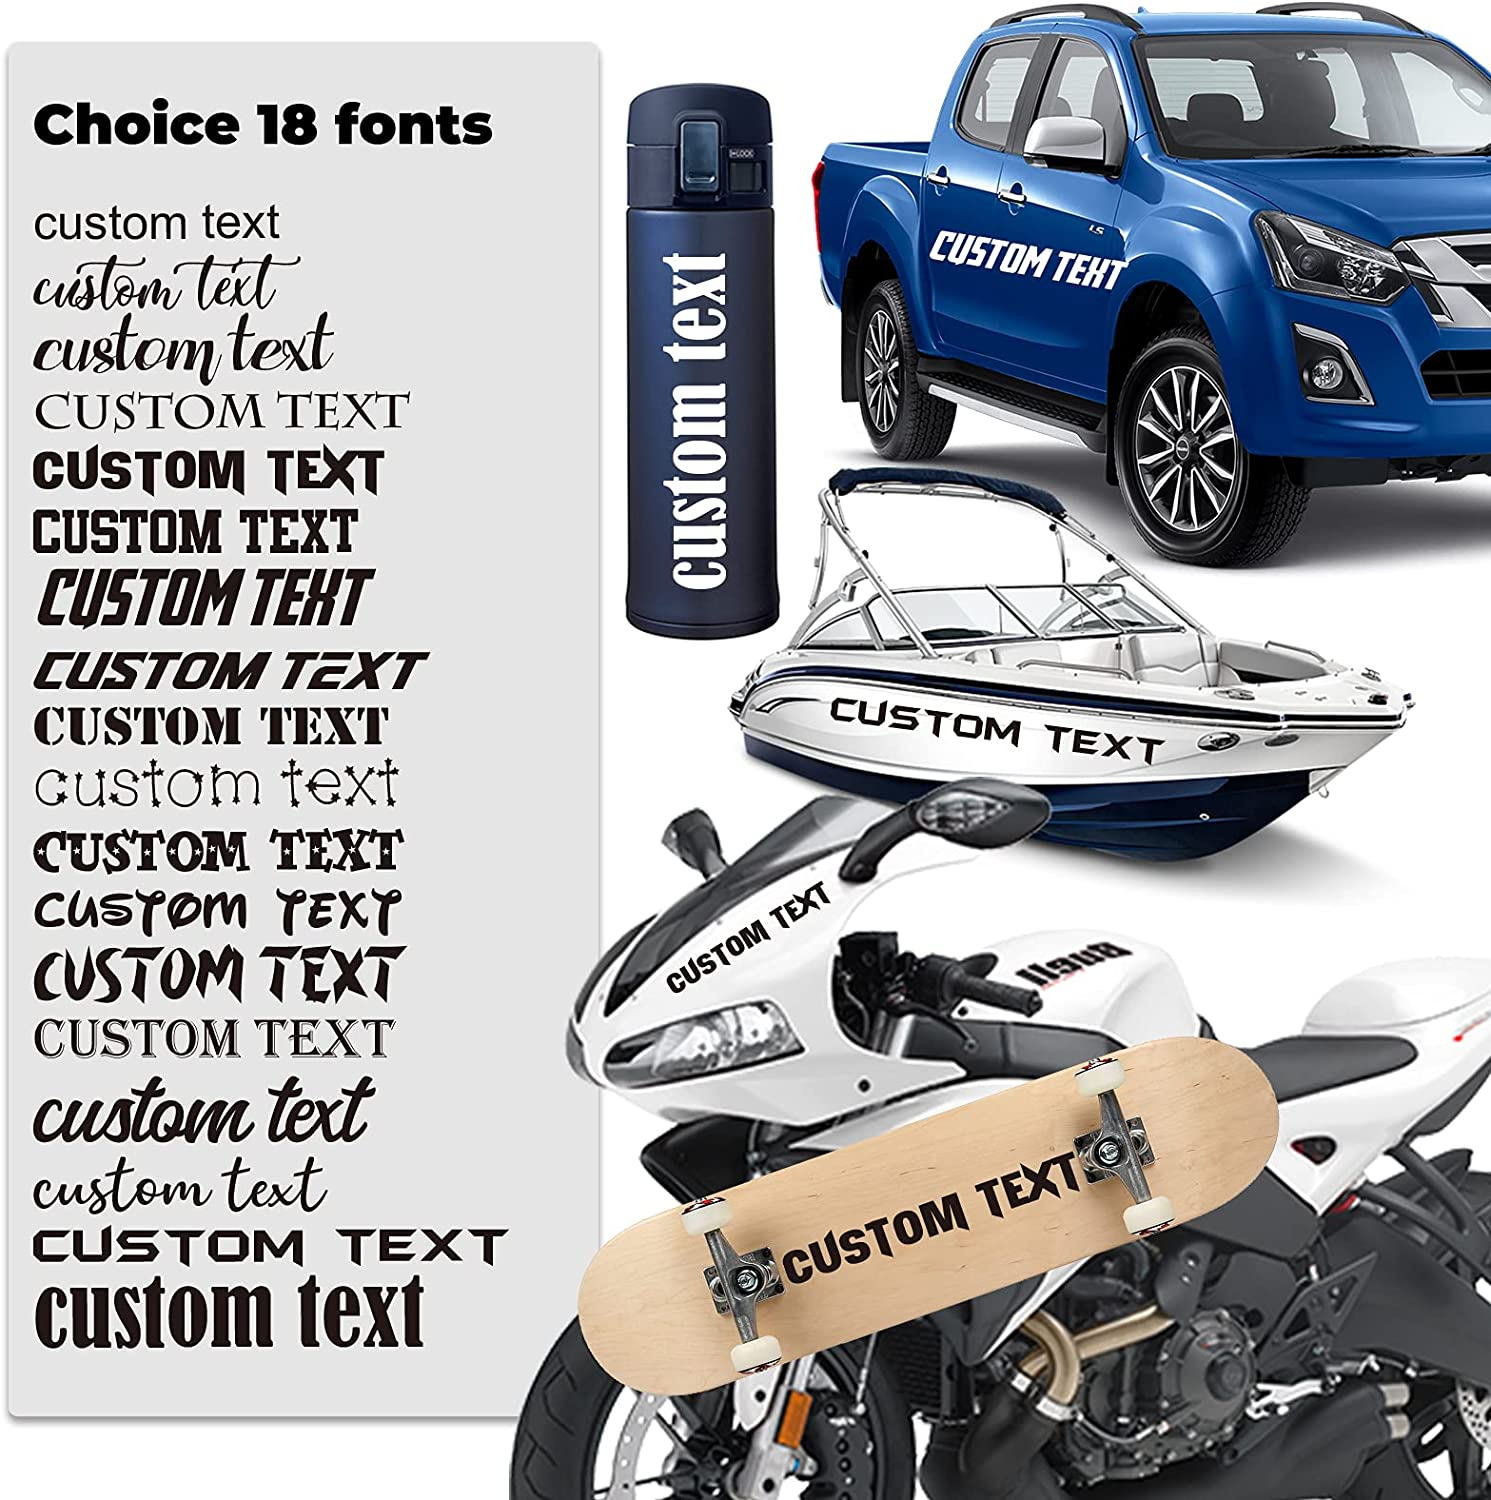 ZIHENG Design Custom Your Text 14 V lowest Our shop OFFers the best service price 18 Fonts Colors + Sizes